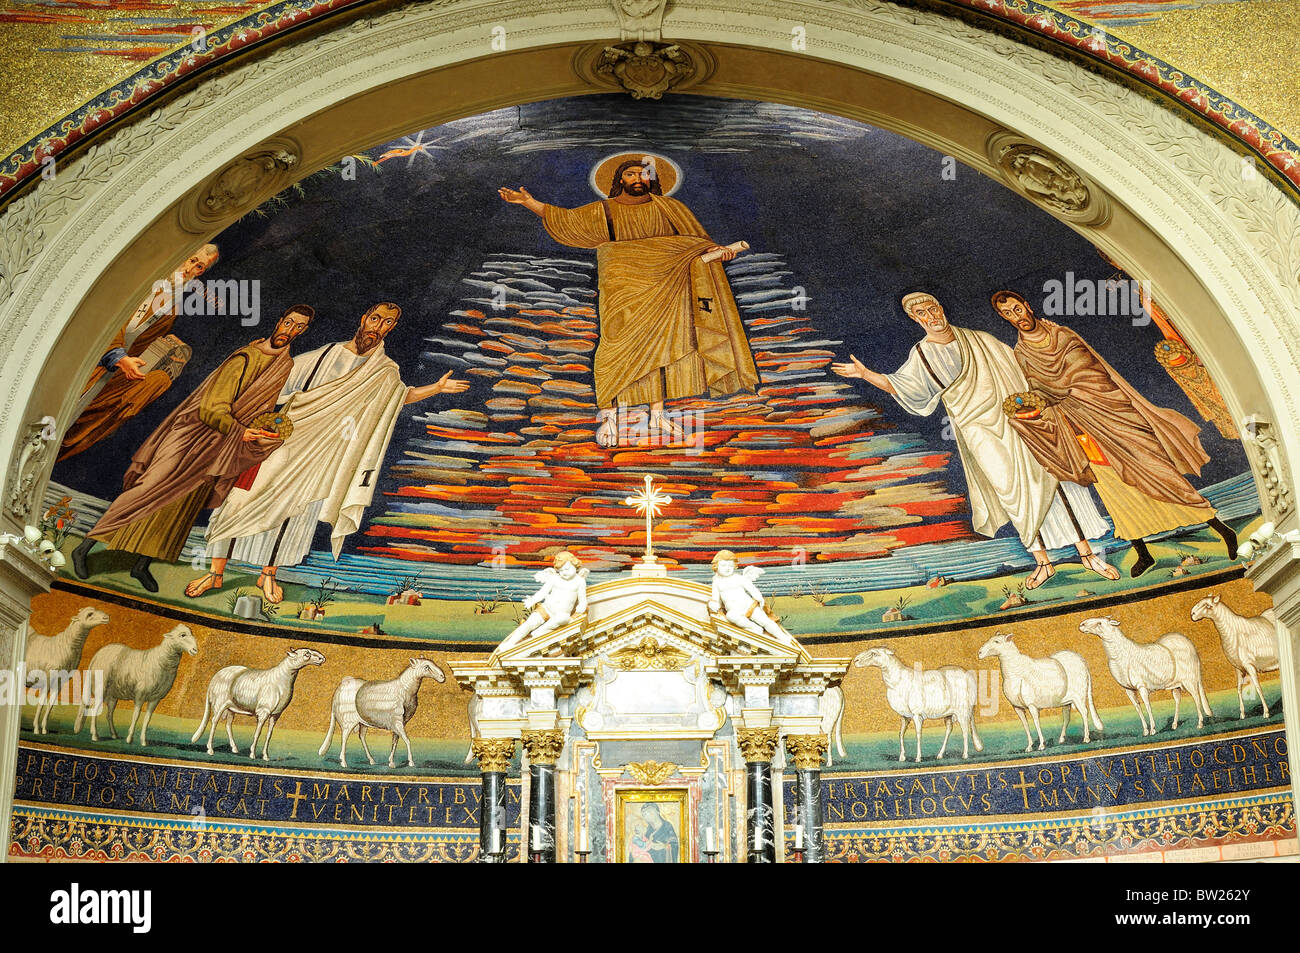 Apse mosaics, Basilica of St Cosmas & Damian, Foro Romano Stock Photo